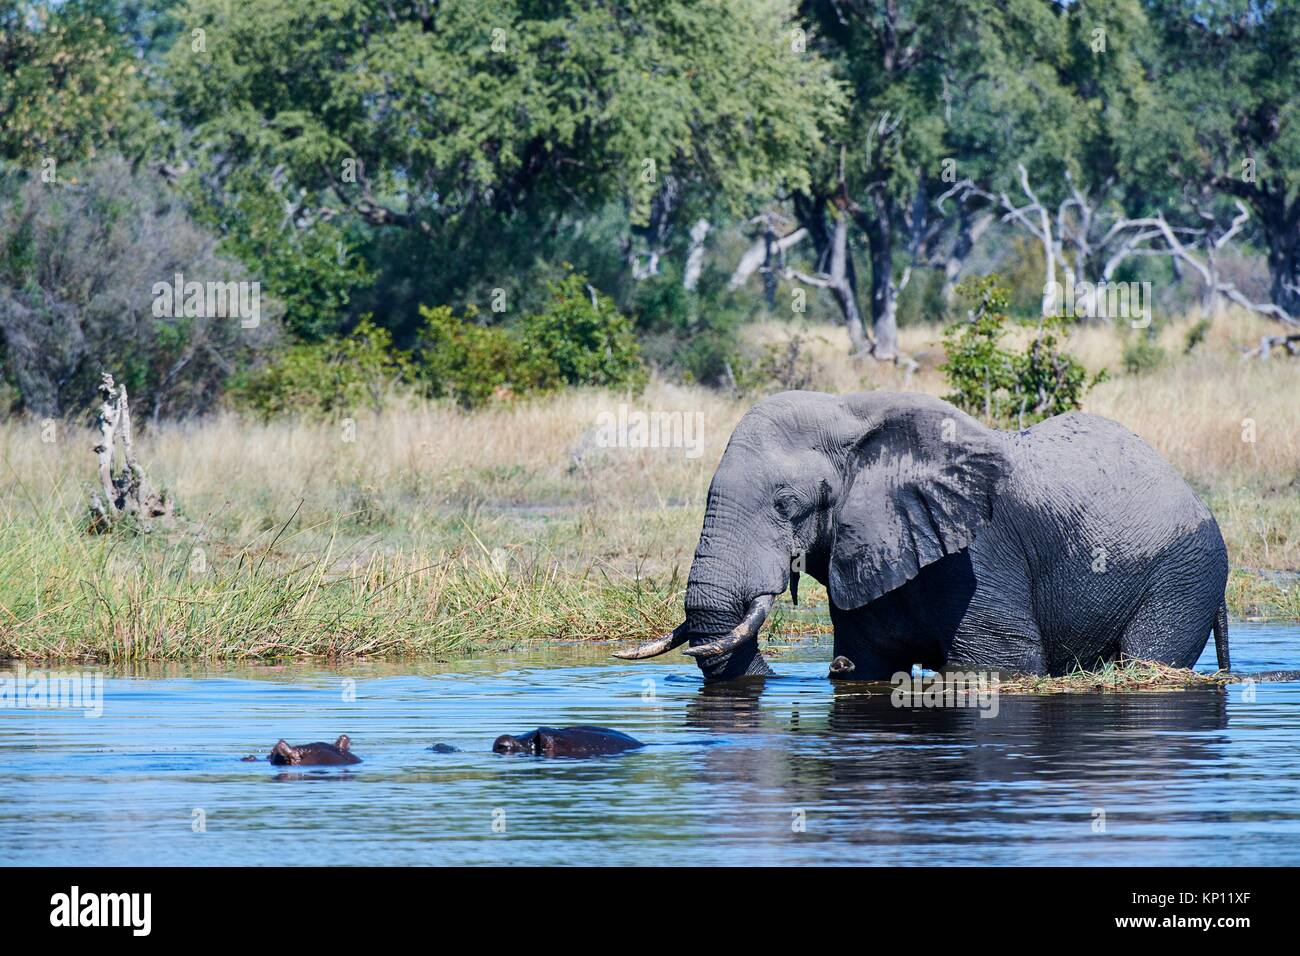 African elephant bull (Loxodonta africana) crossing Khwai river in front of Hippopotamus (Hippopotamus amphibius), Stock Photo